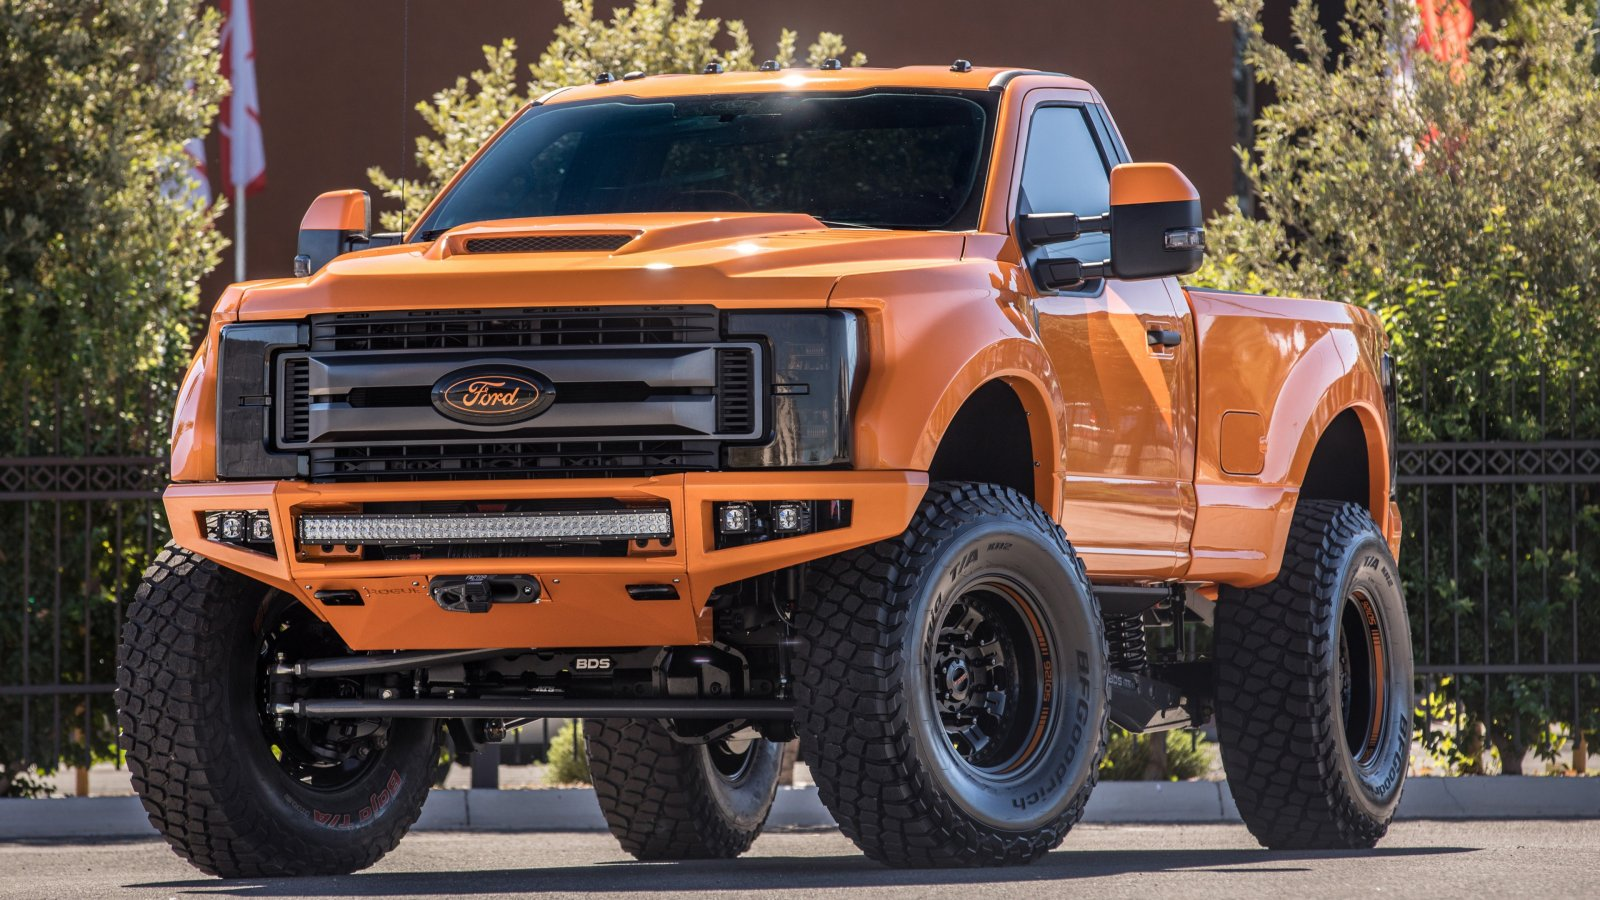 2017_ford_f_250_super_duty_xlt_by_bds_suspension-3840x2160.jpg